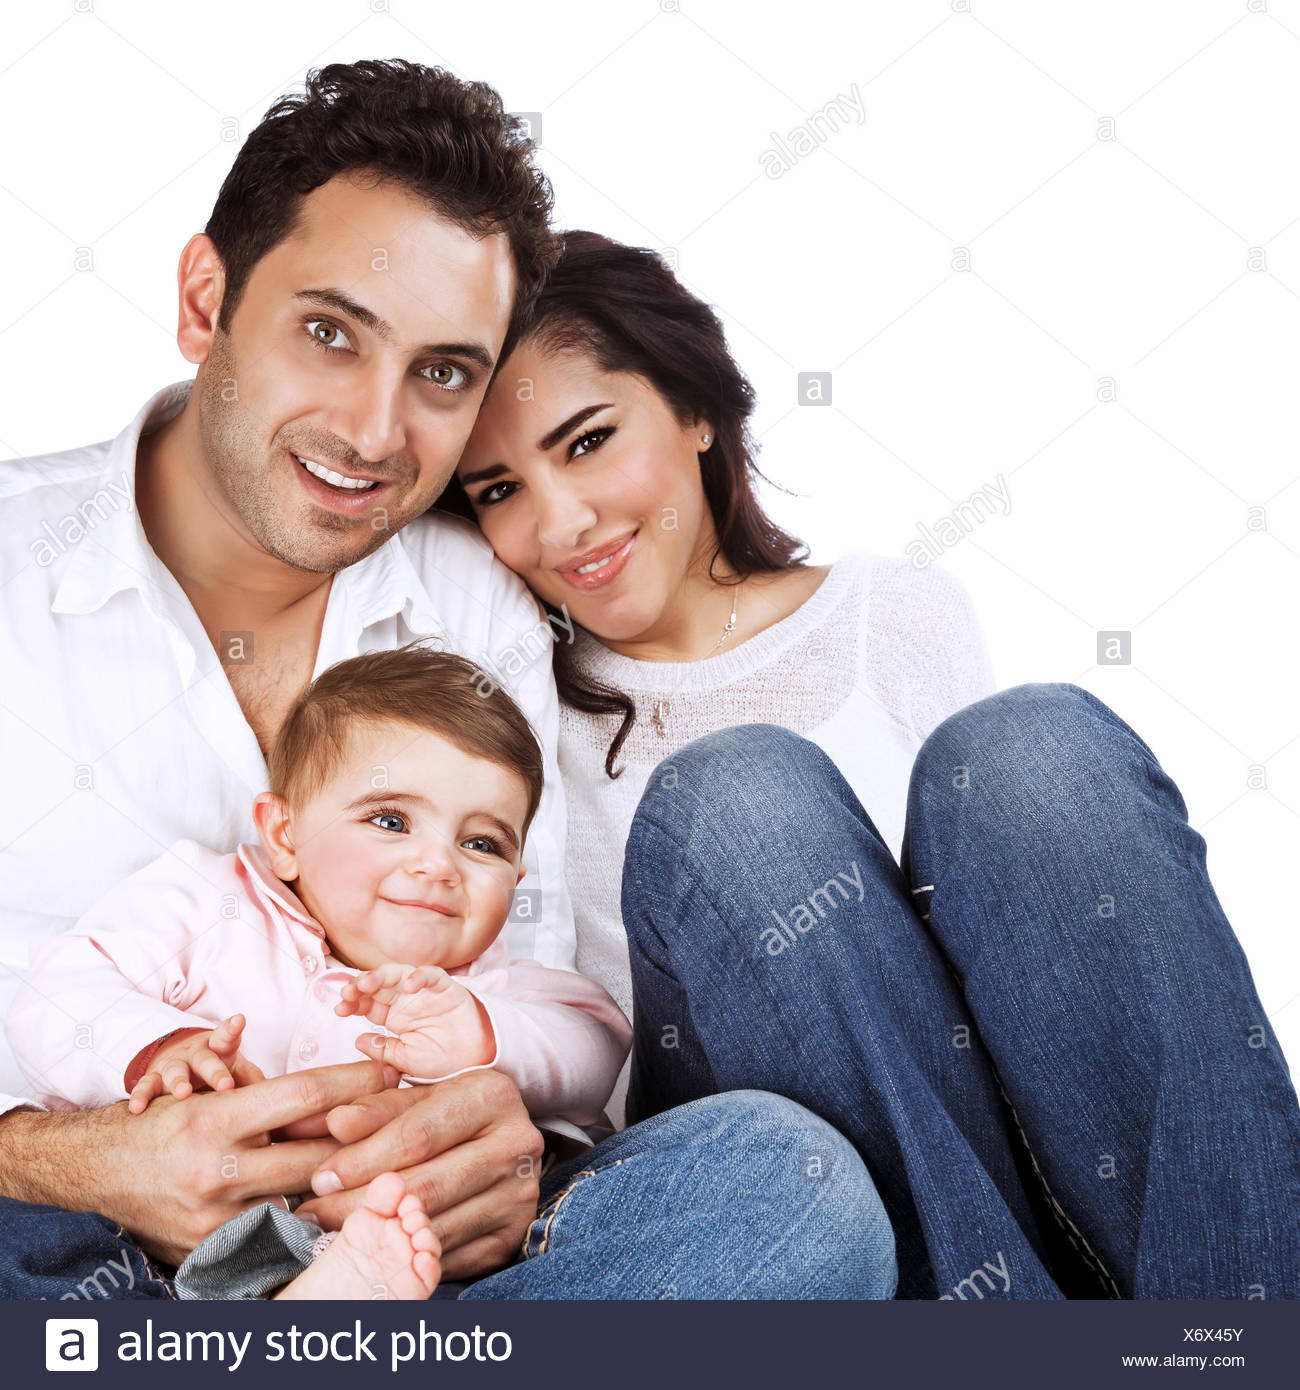 Happy family portrait isolated on white background baby girl with young beautiful parents healthy lifestyle love and happiness concept